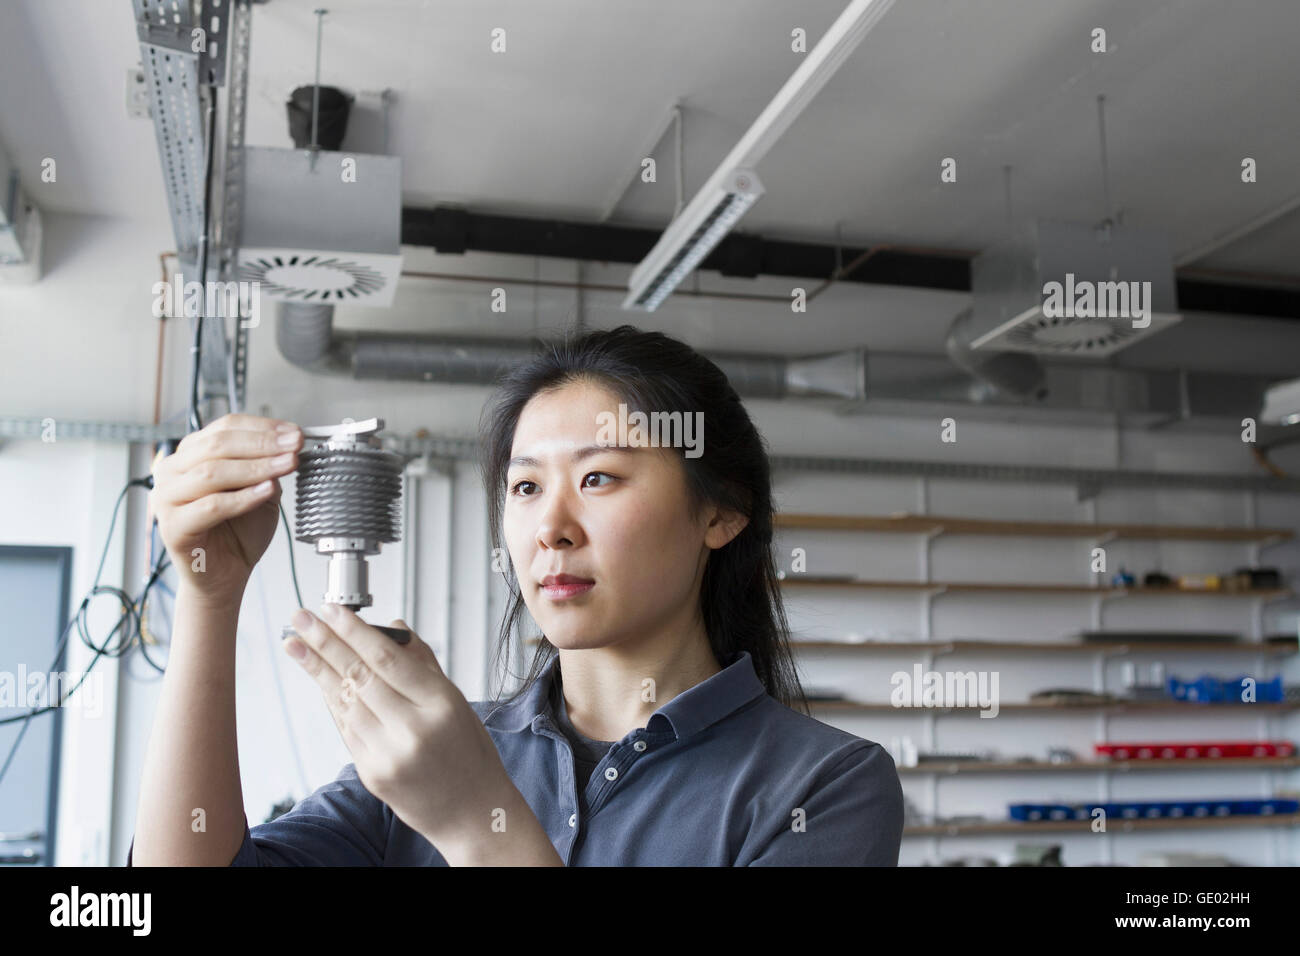 Young female engineer working in an industrial plant, Freiburg im Breisgau, Baden-Württemberg, Germany Stock Photo